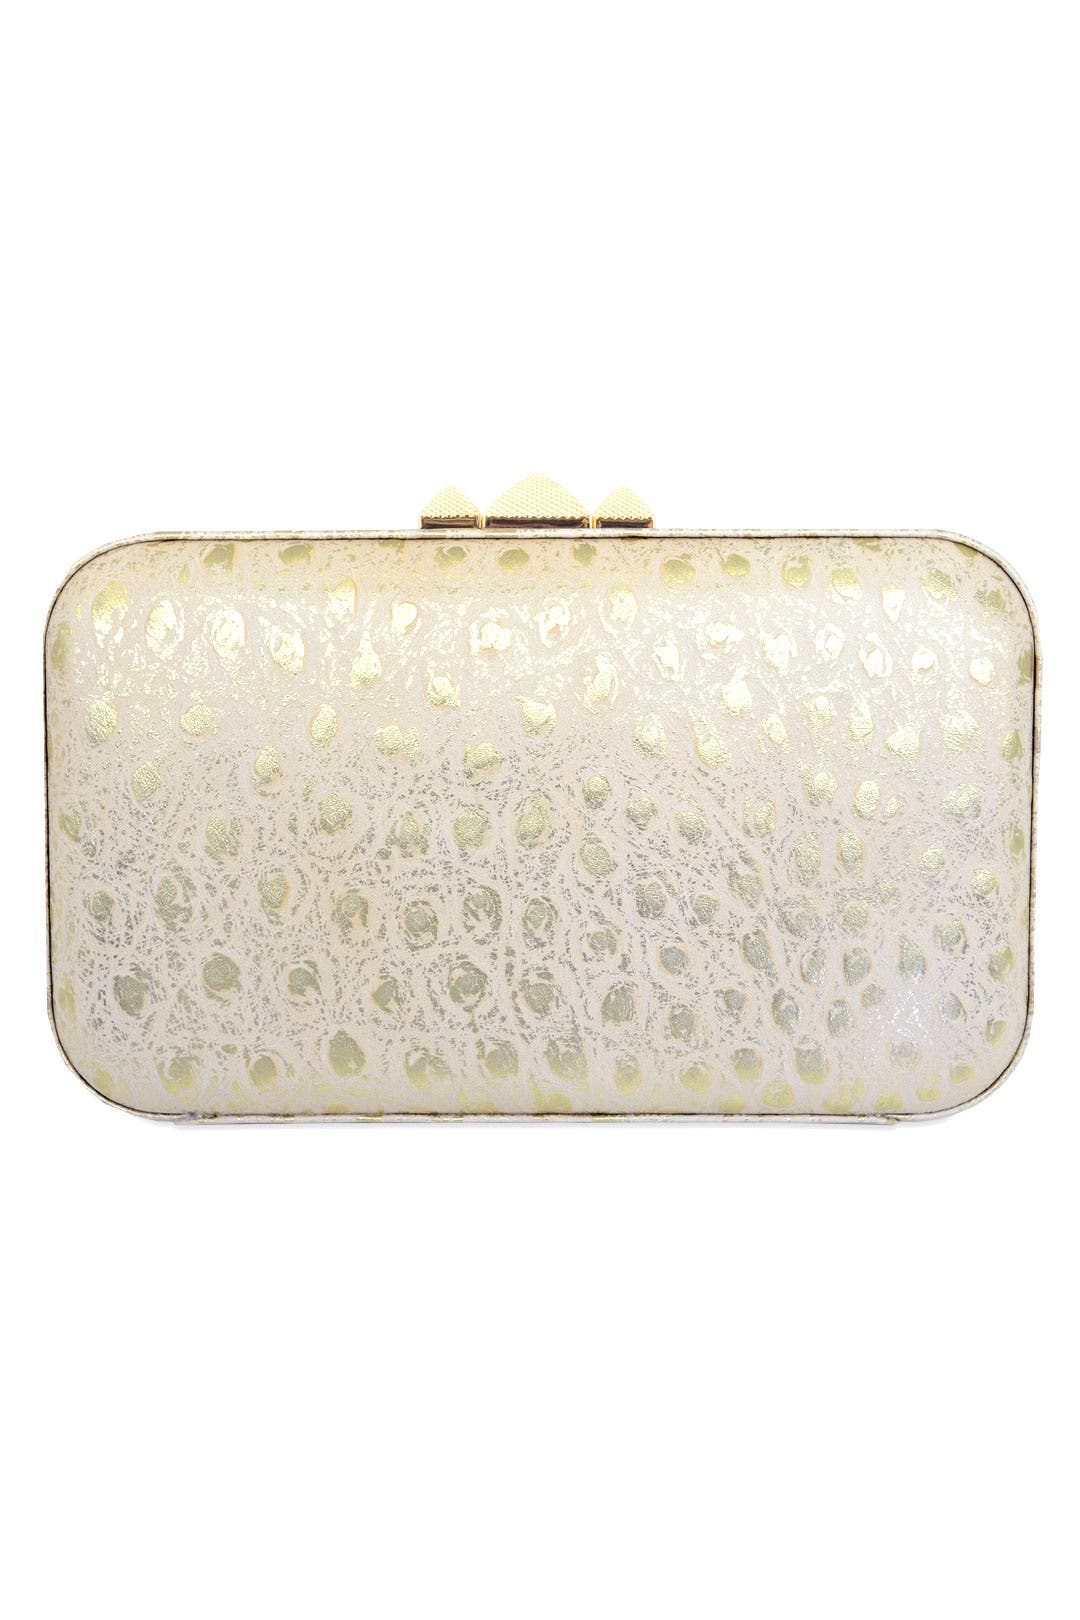 Not So Demure Clutch by Rebecca Minkoff Handbags